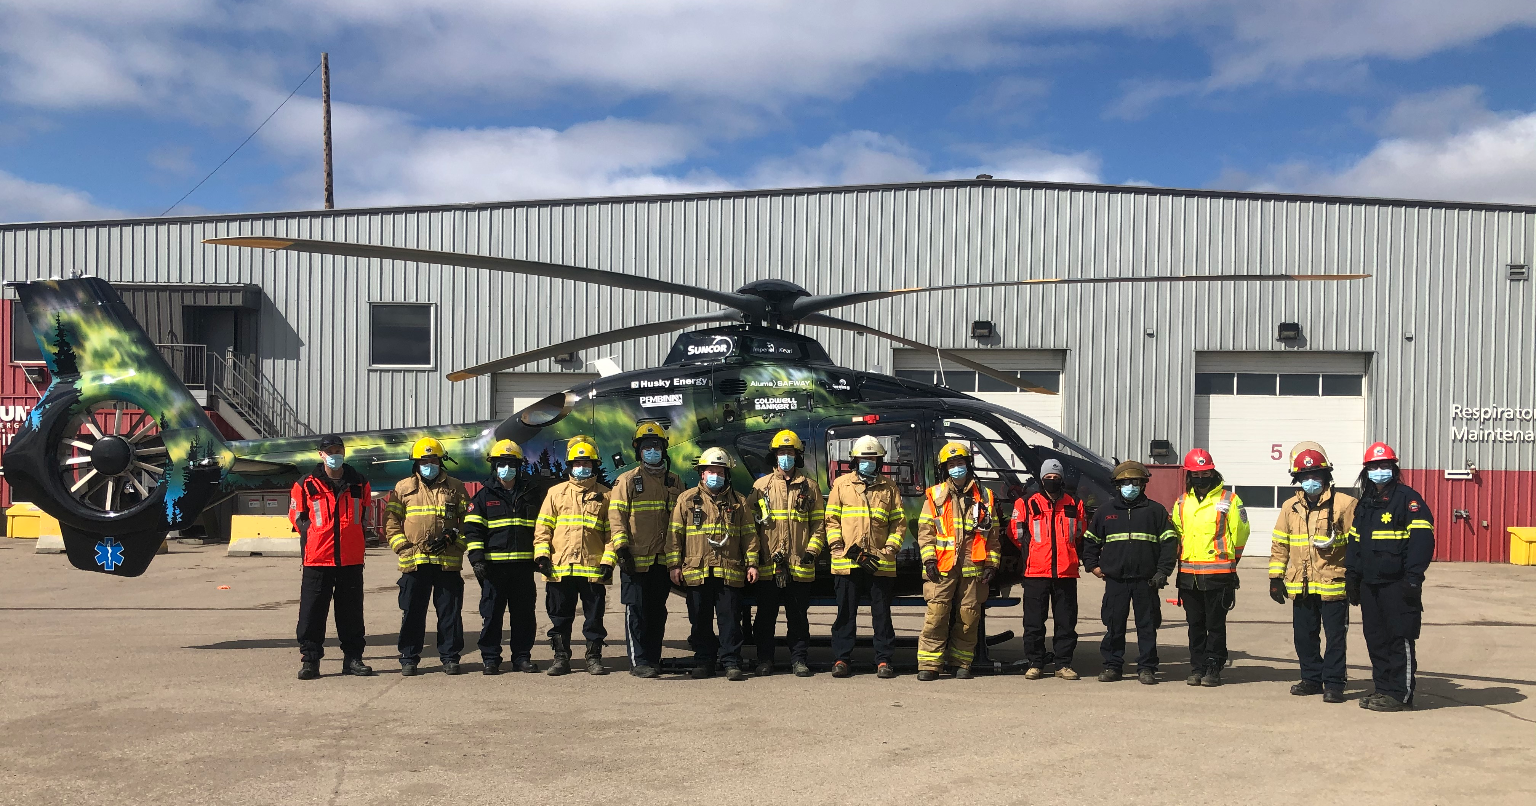 team standing in front of helicopter